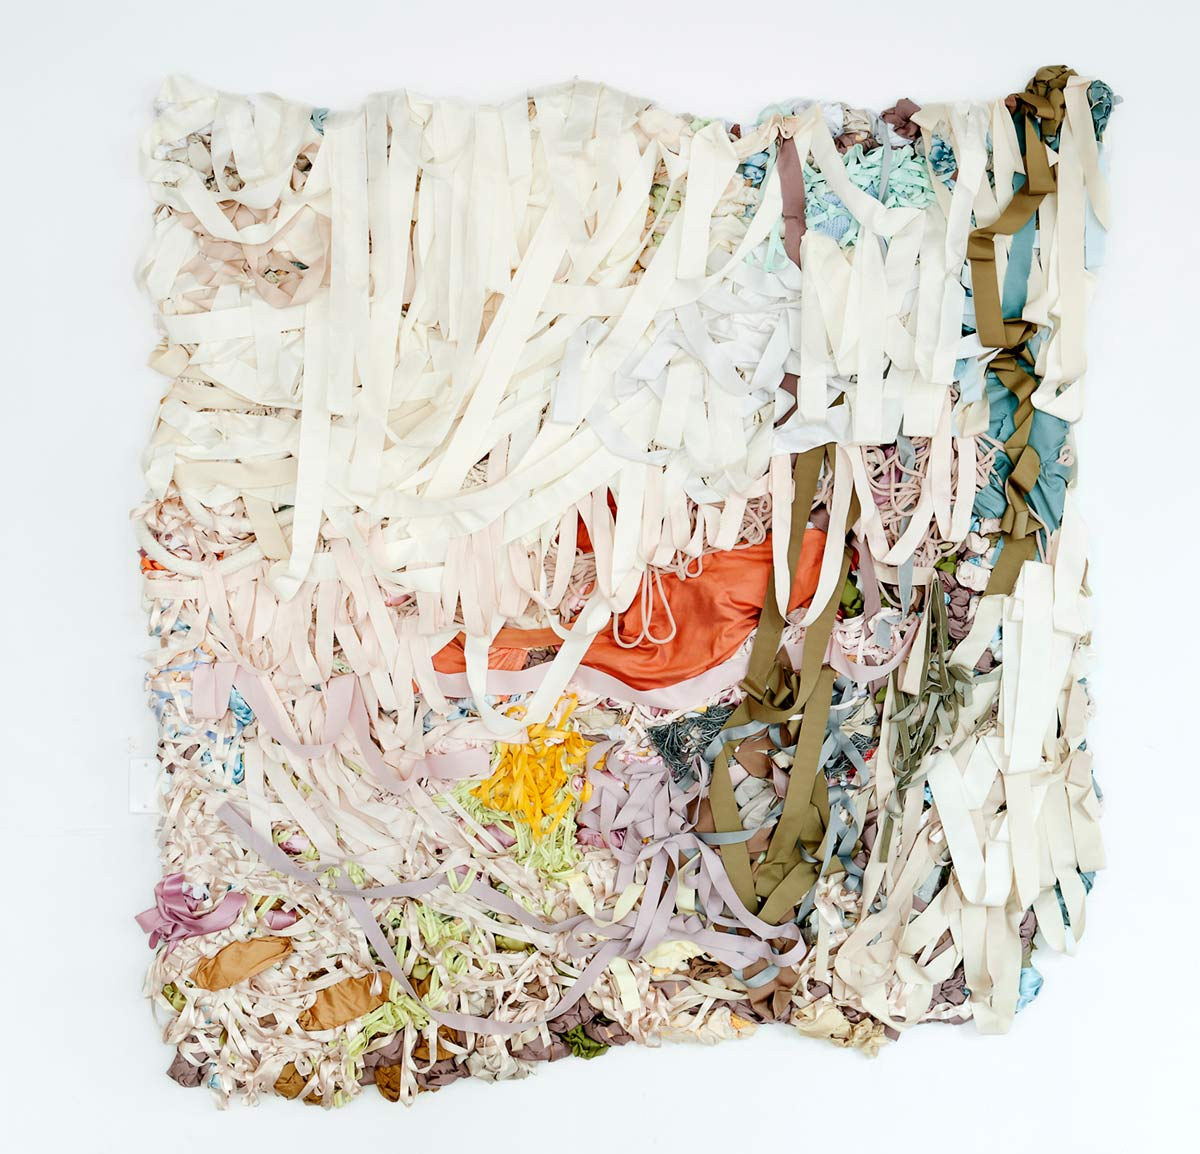 Daybreak, 7ft x 6ft x 5in, fabric, ribbon, mixed media, 2013